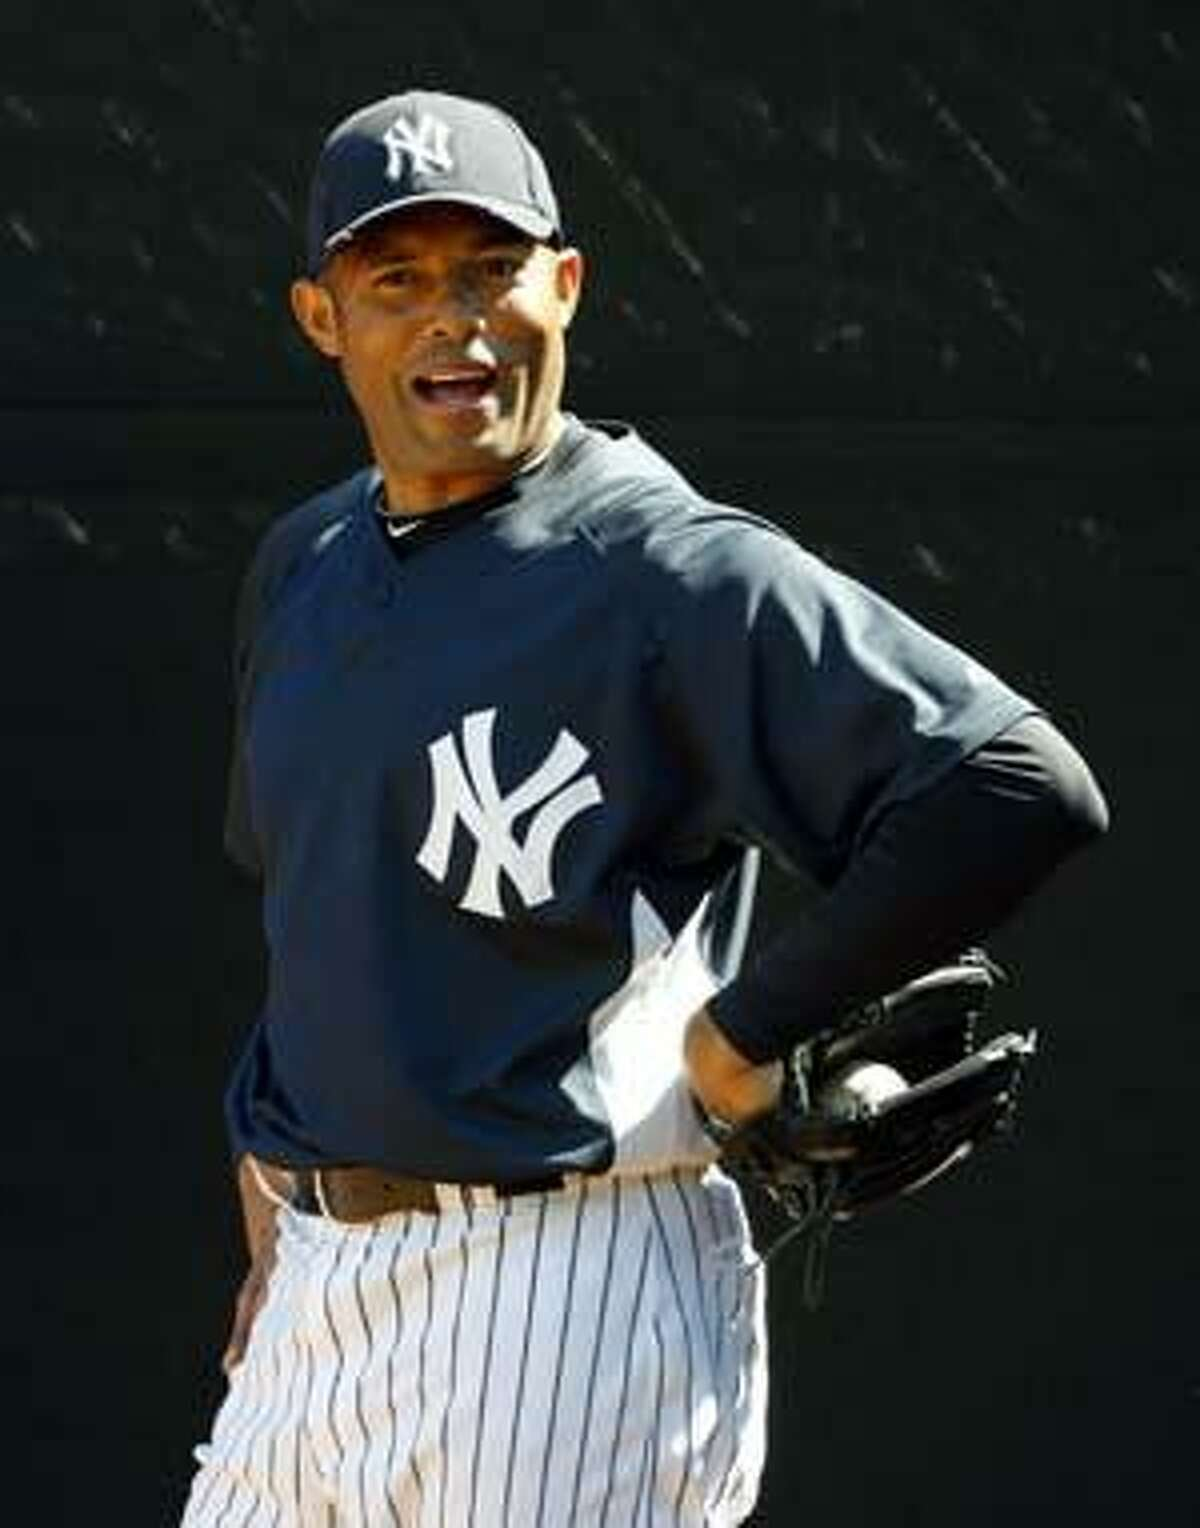 New York Yankees closer Mariano Rivera talks back to catcher Francisco Cervelli, not seen, during a bullpen session at baseball spring training at Steinbrenner Field in Tampa, Fla., Monday, March 1, 2010. (AP Photo/Kathy Willens)